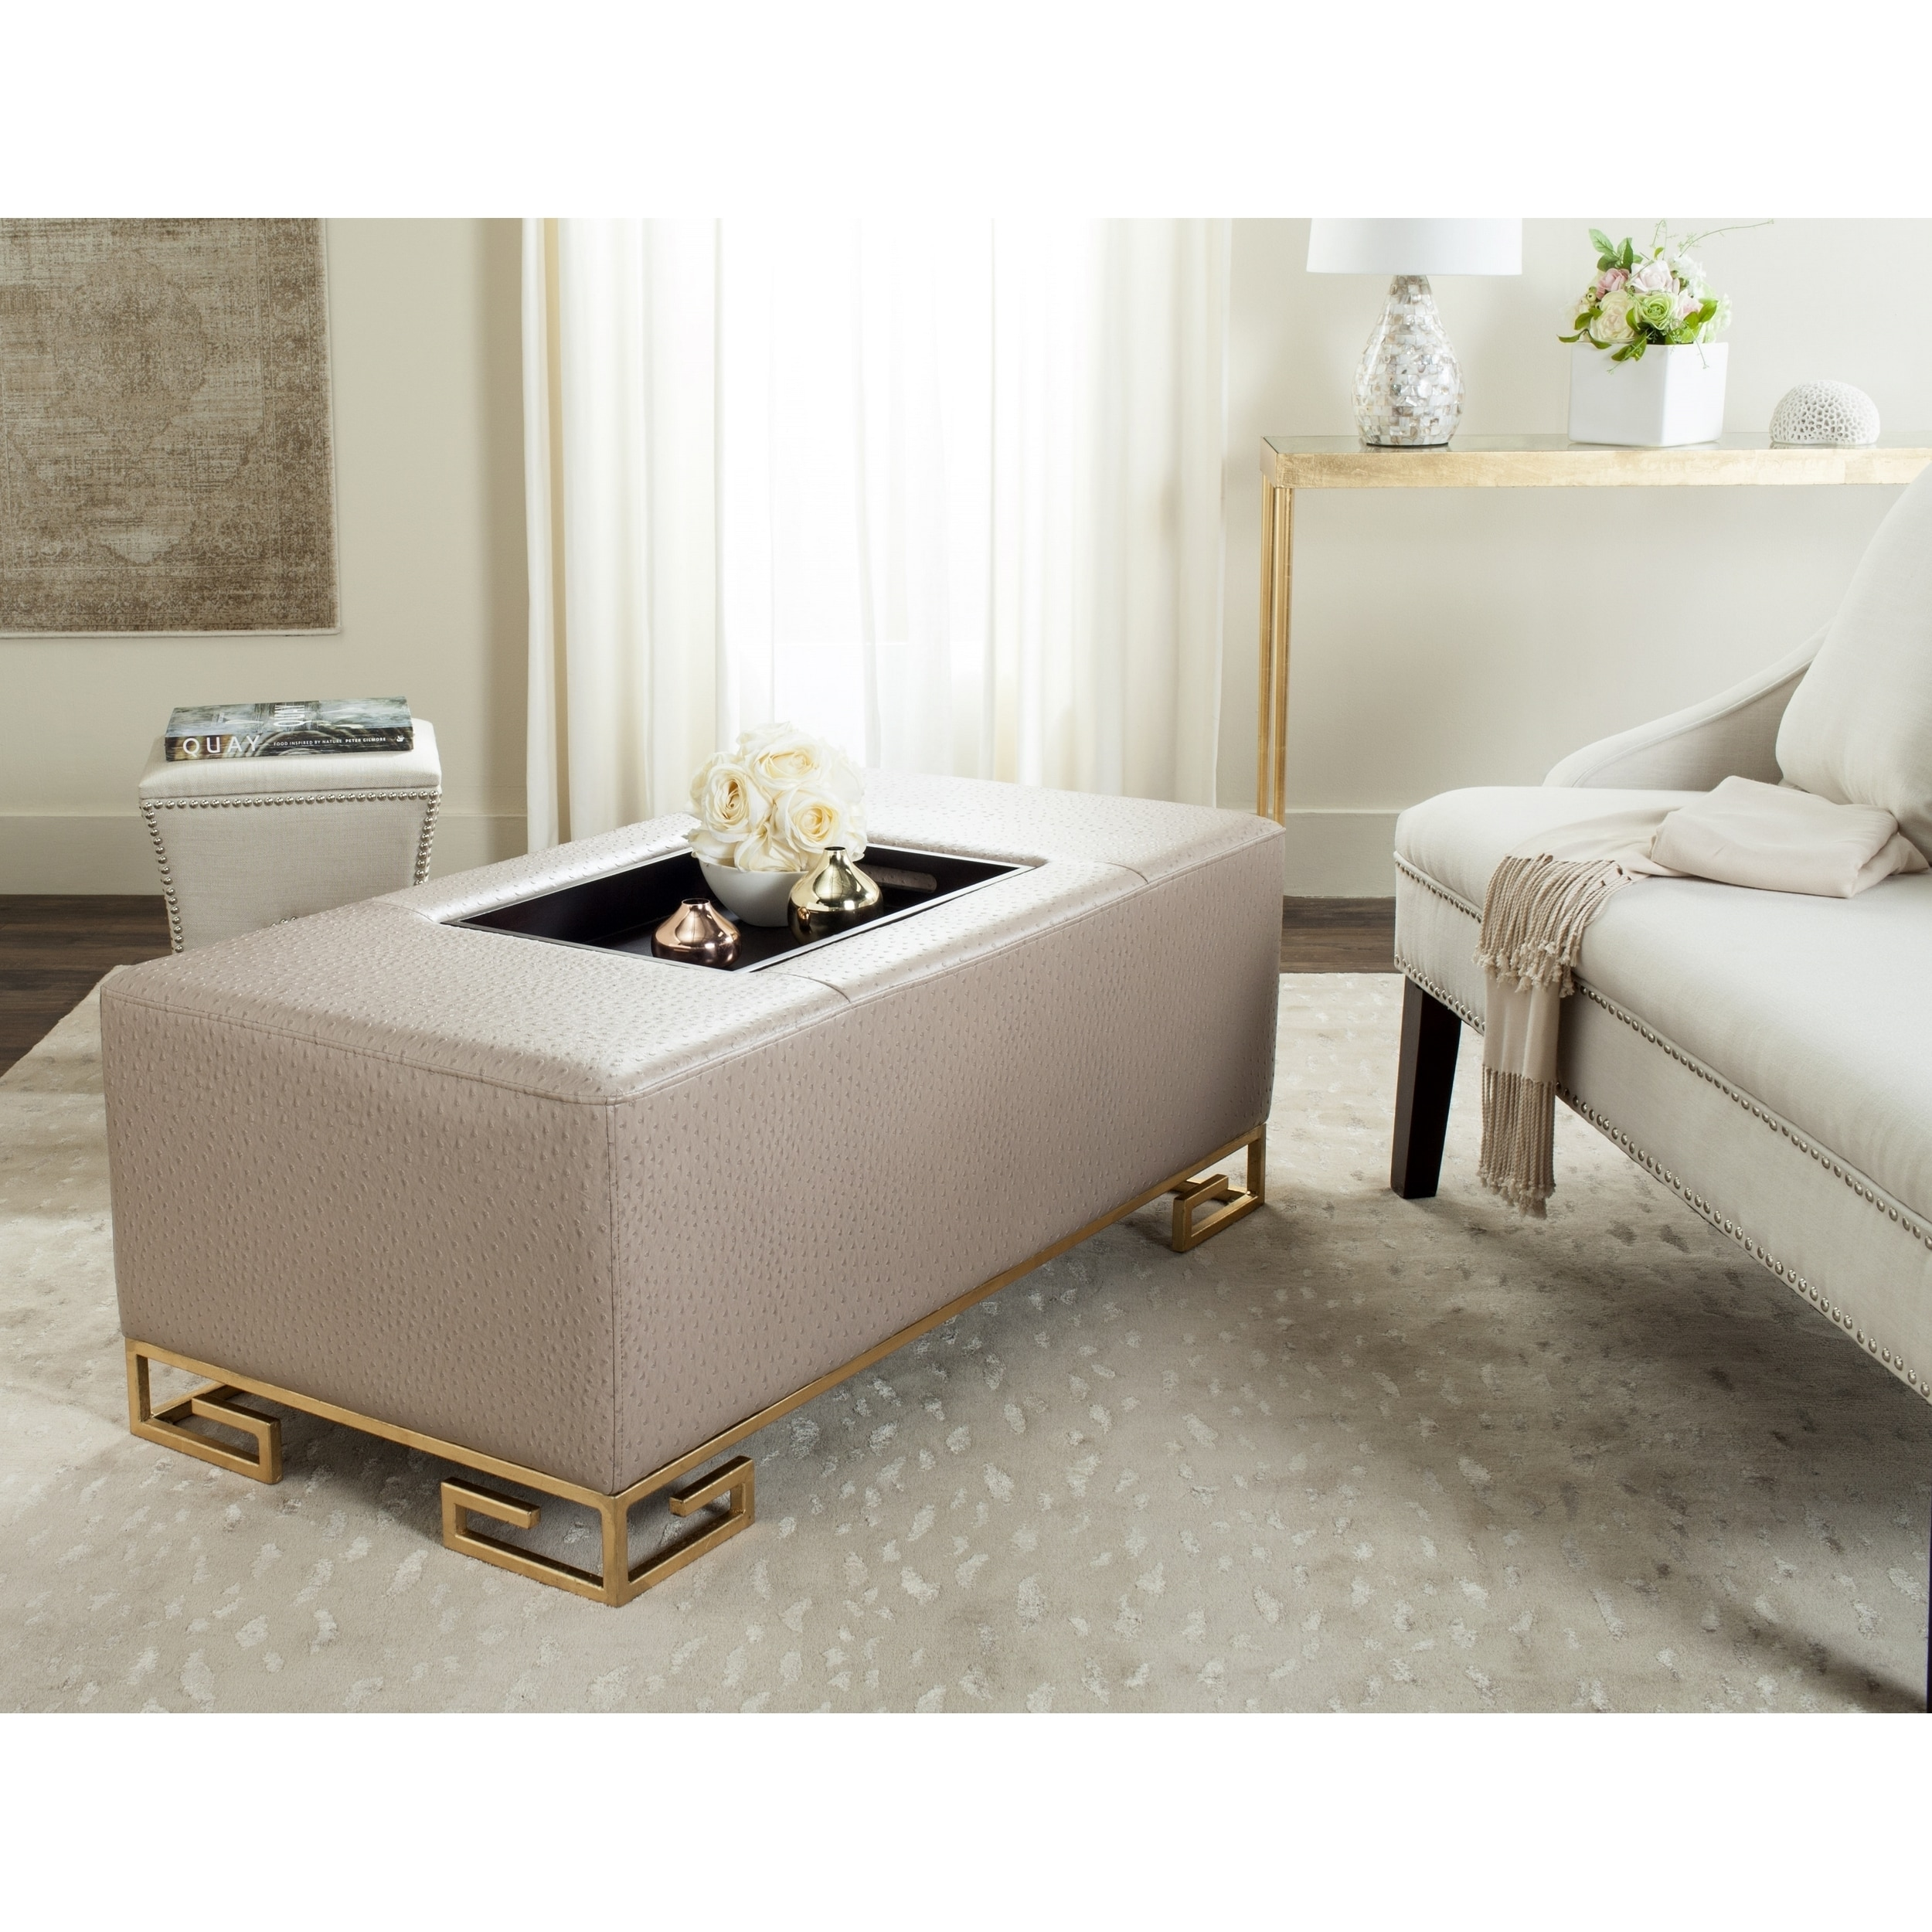 Safavieh Julian Faux Ostrich Tray Taupe Ottoman Coffee Table Free Shipping Today 13342437